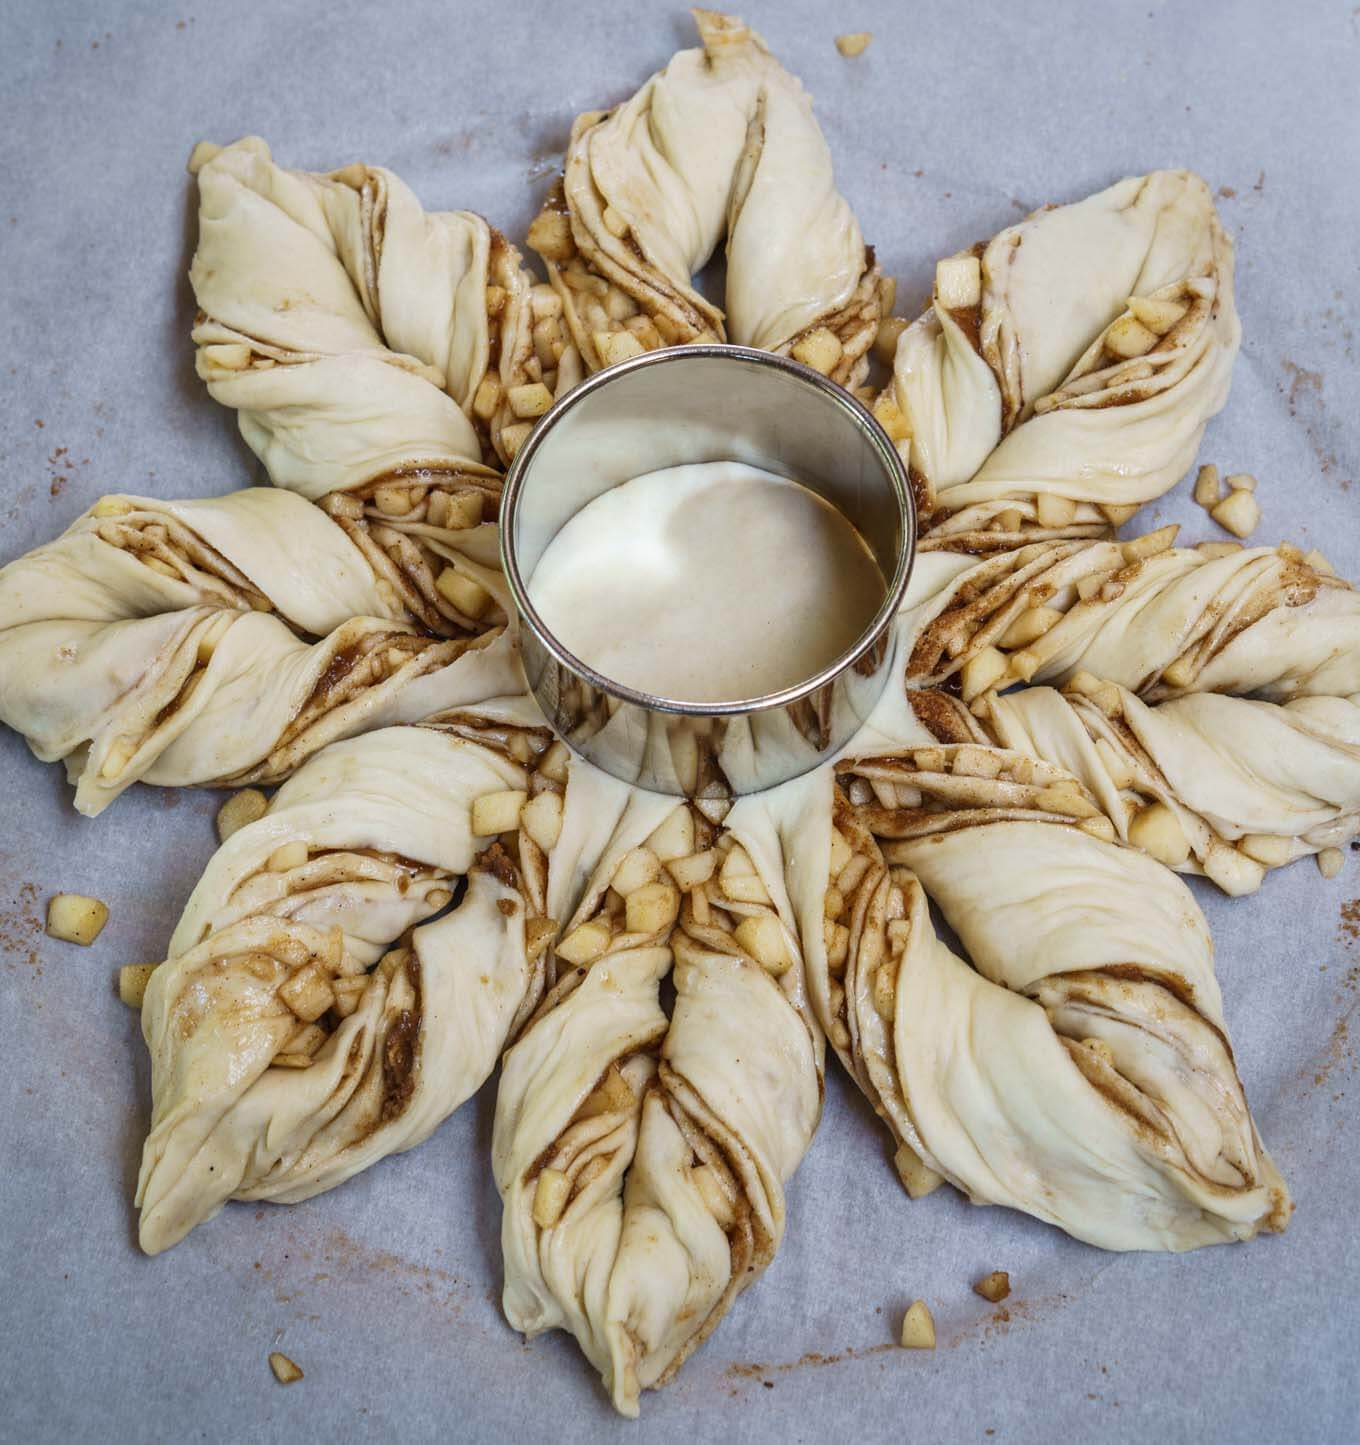 Spiced Apple Star Bread is so good you can eat it with a meal or as a dessert. It's a sweetened buttery, bread that's tender and warm from the fall spices. This bread looks hard to make, but it's easier than you think.   HostessAtHeart.com